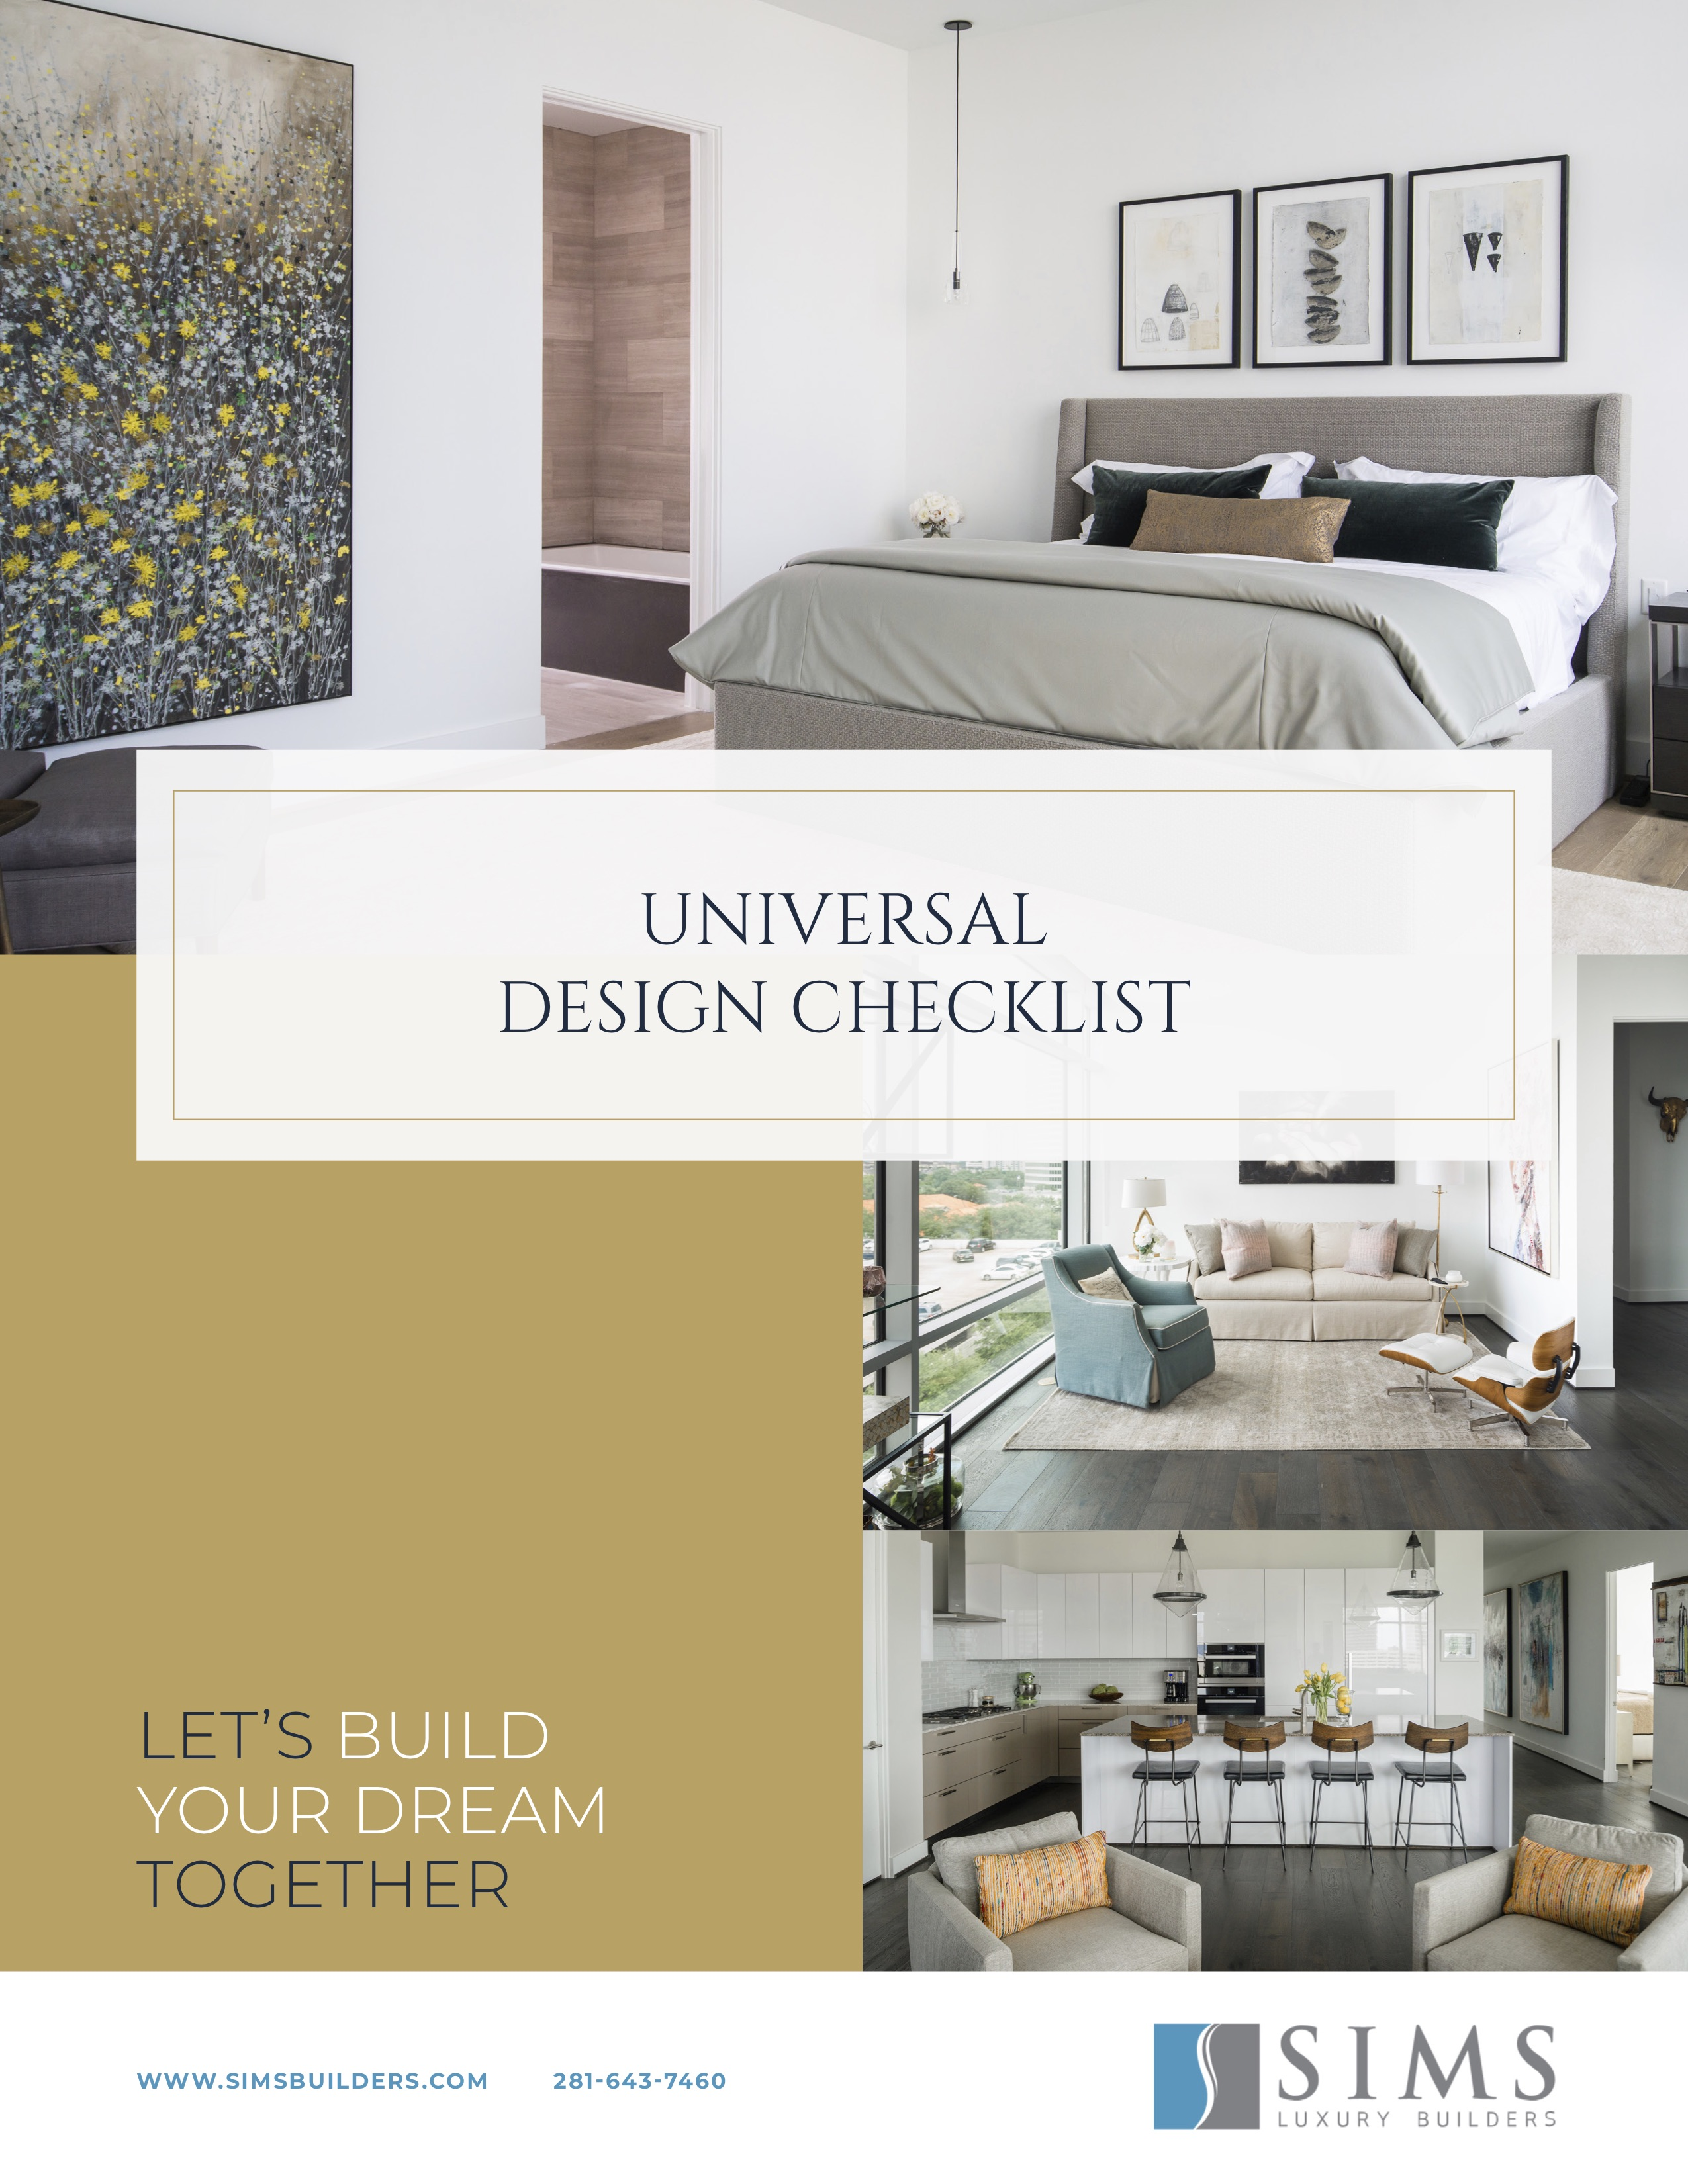 Universal Design Checklist Cover